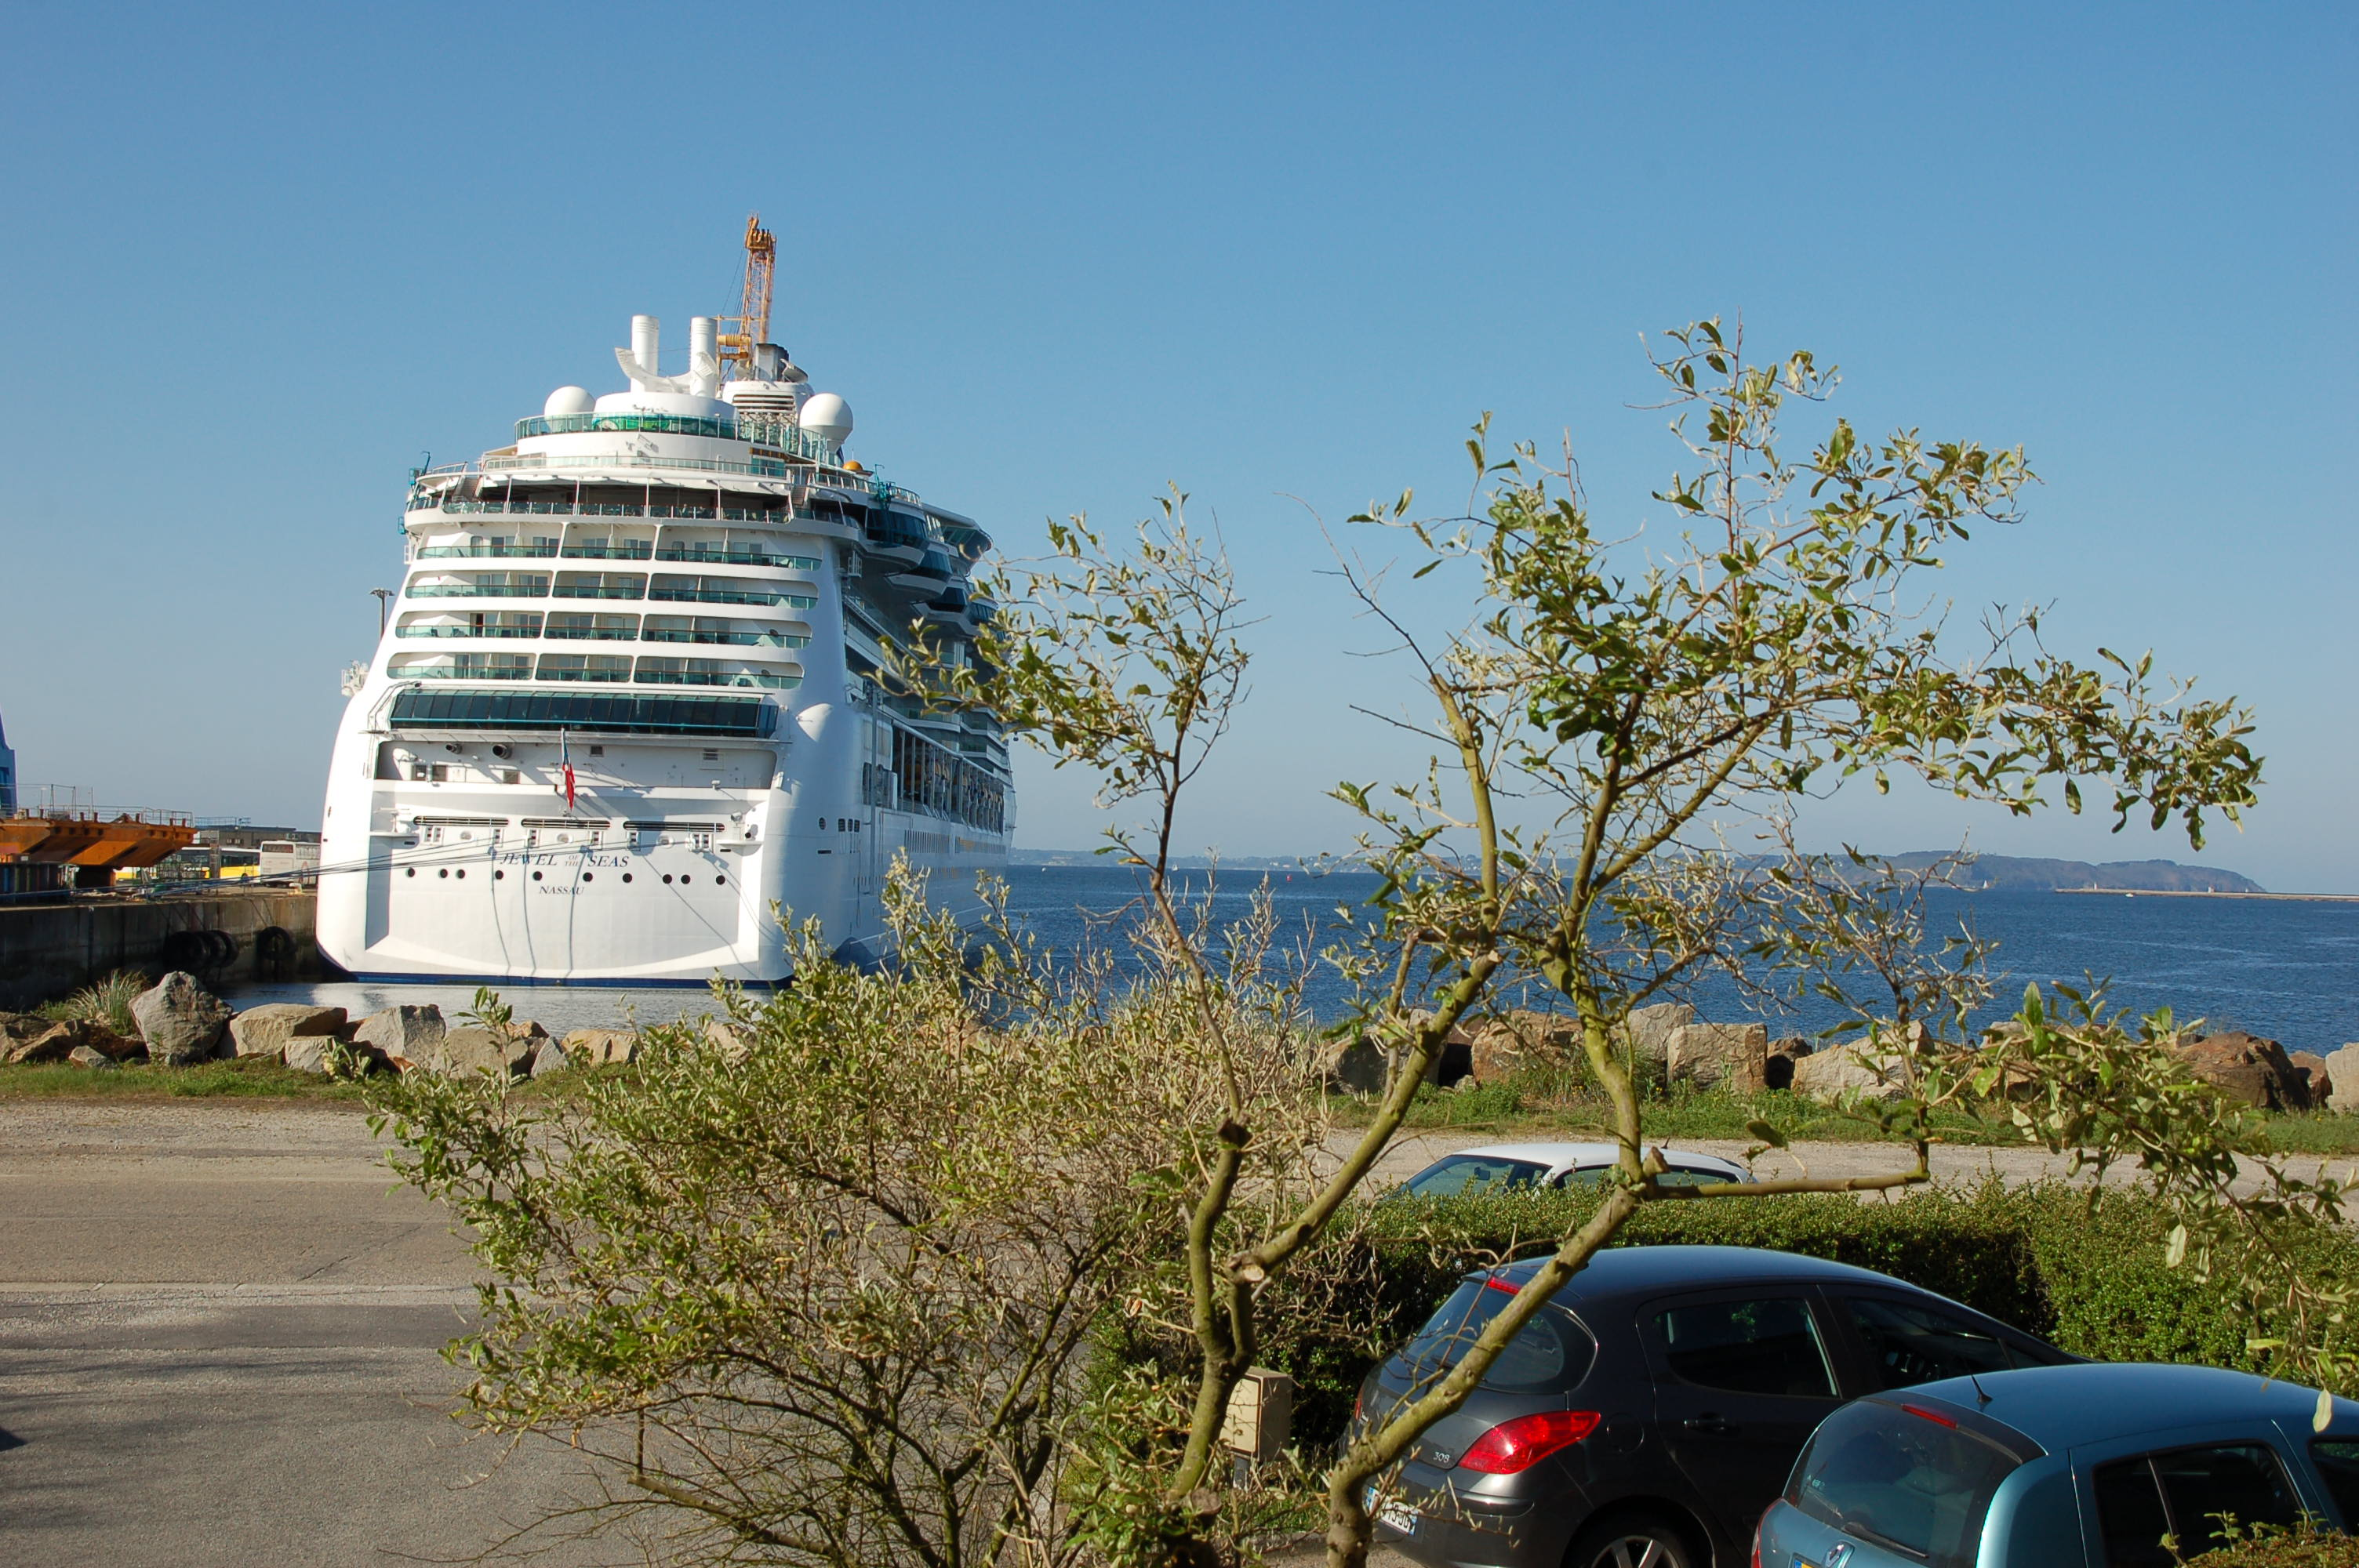 Cruise call in the port of Brest